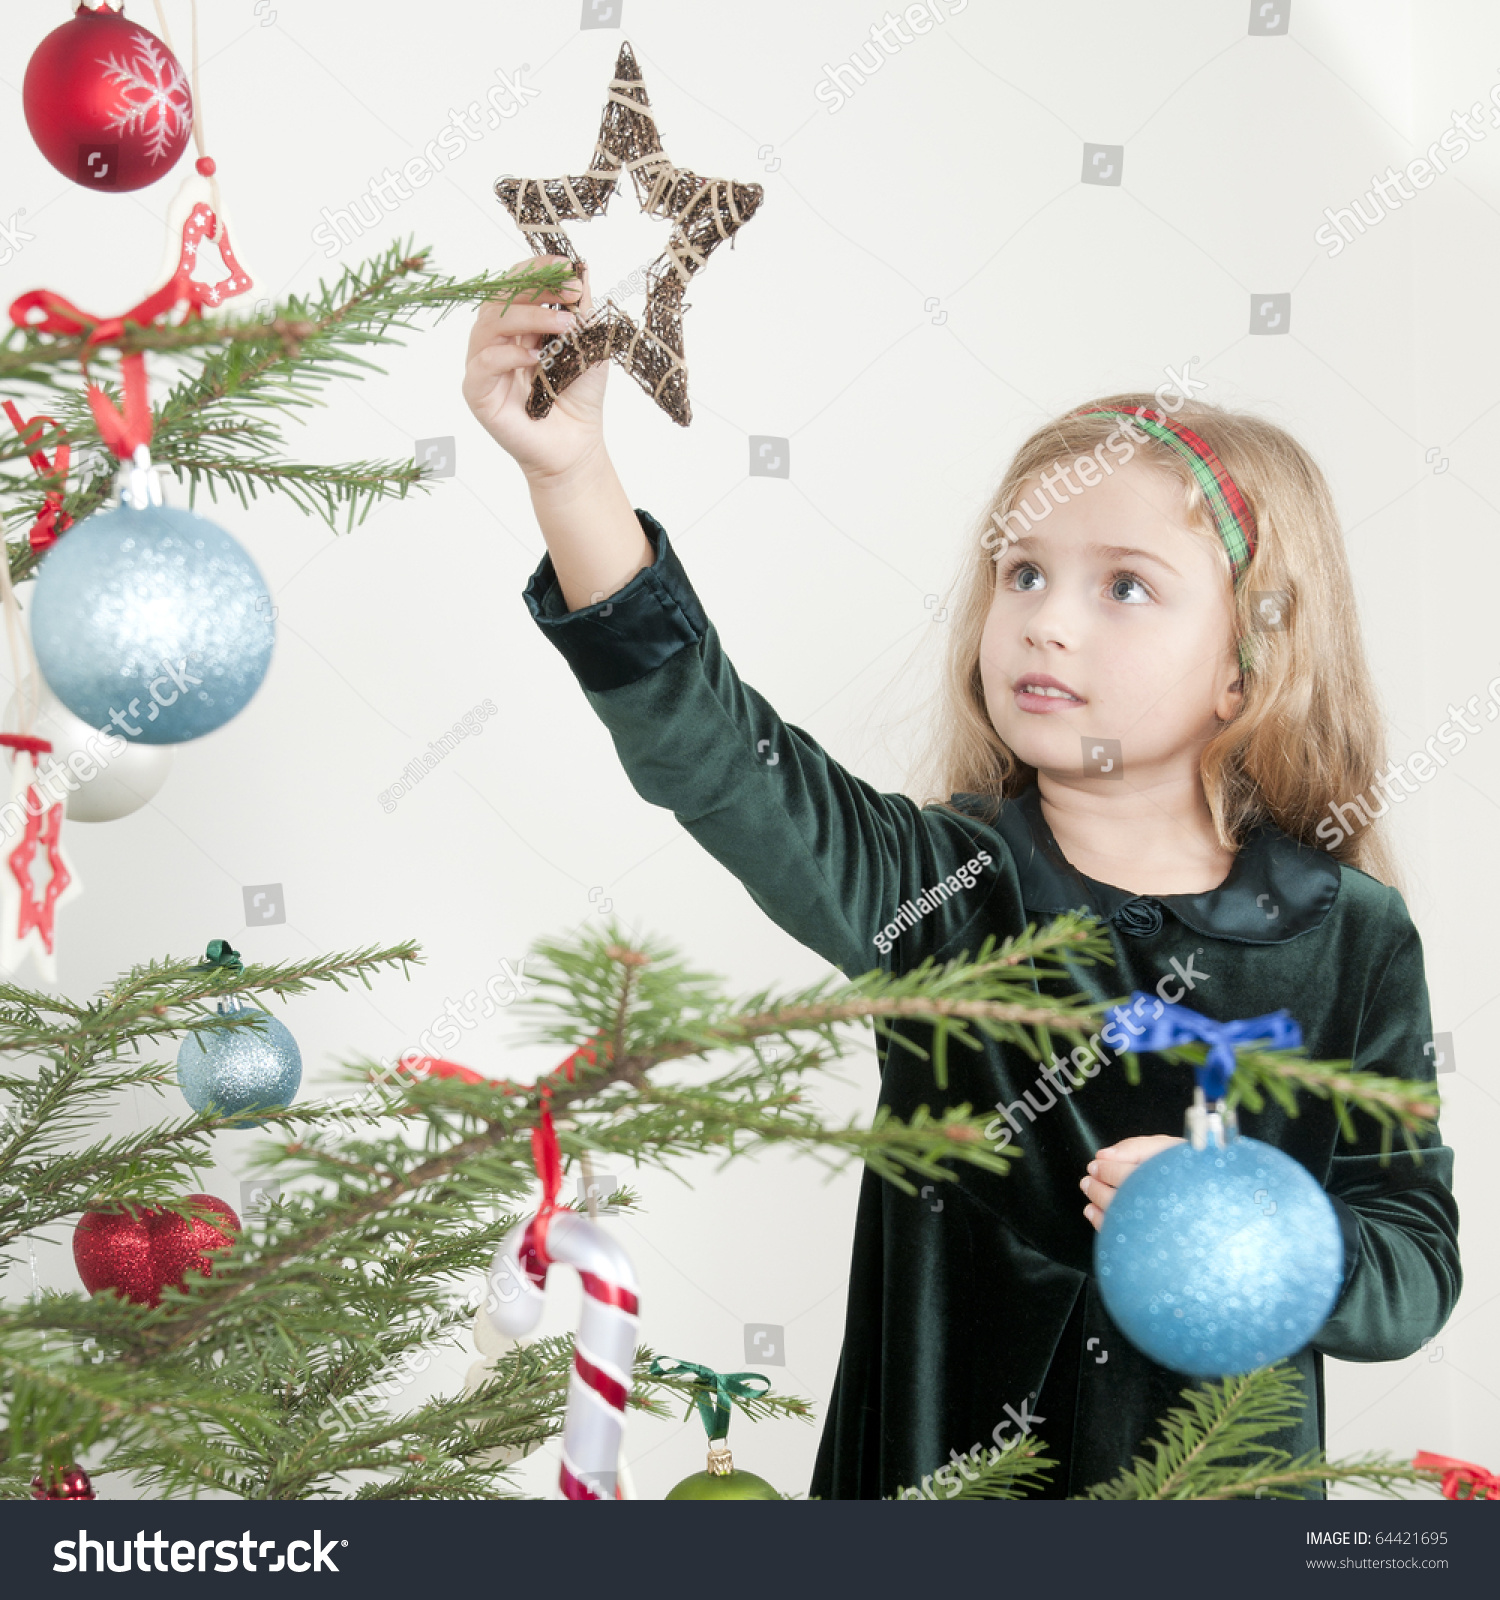 Little Girl Christmas Tree: Little Girl Decorating A Christmas Tree Stock Photo